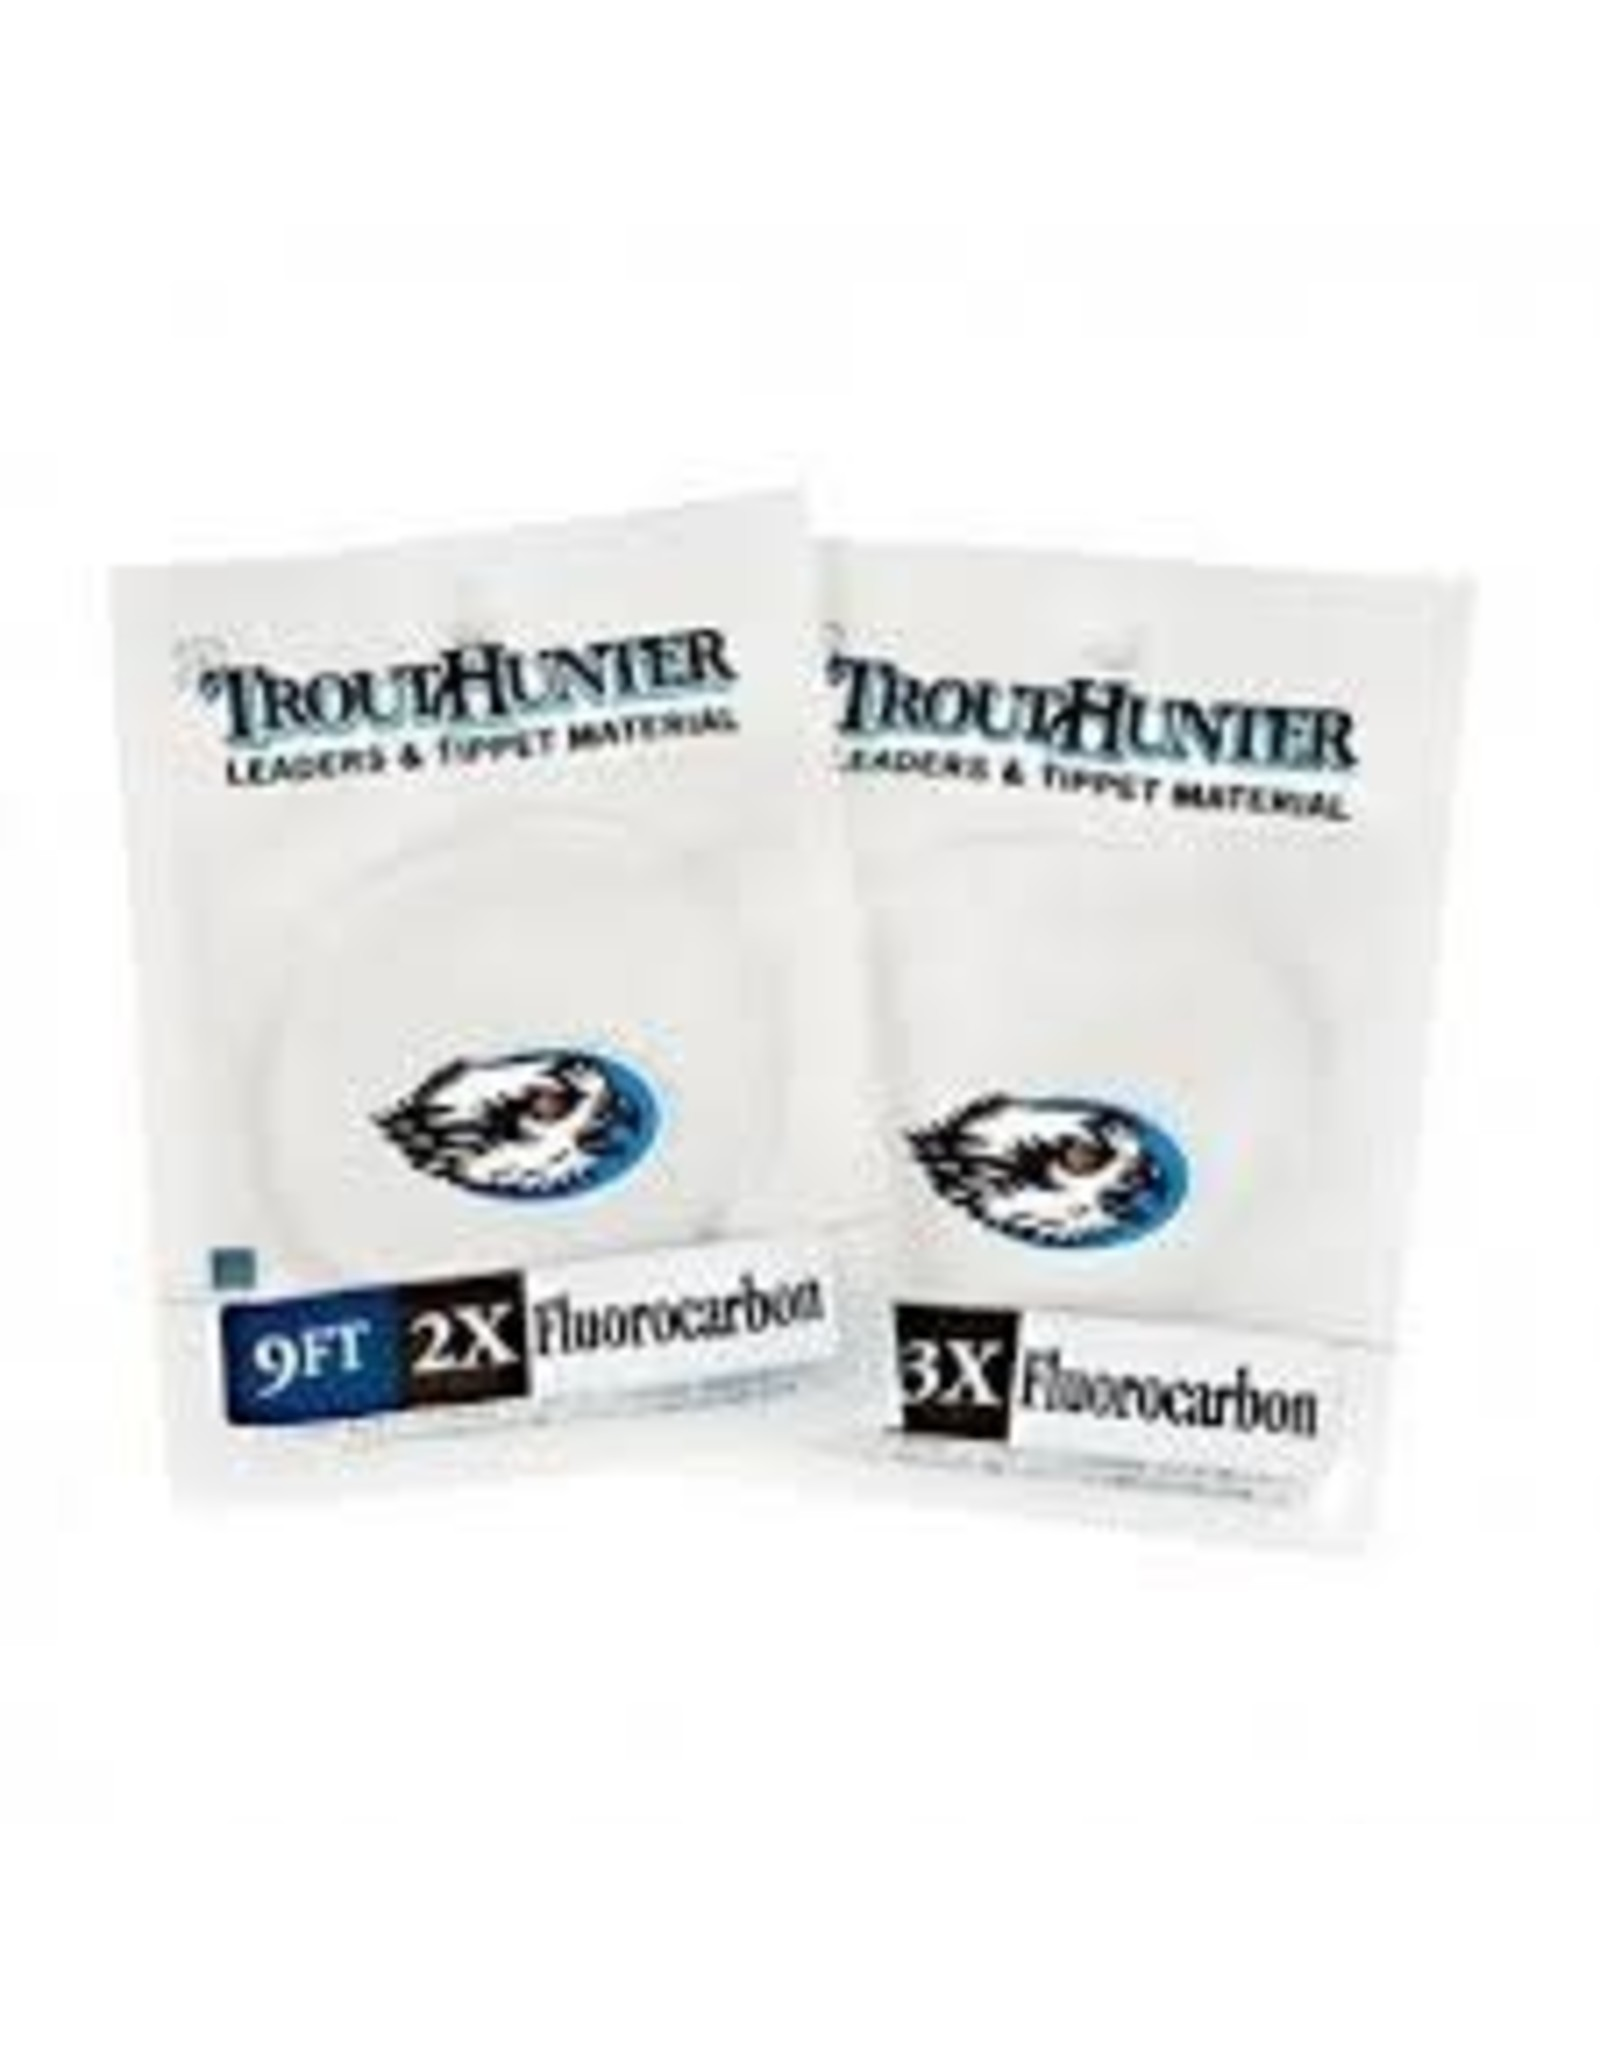 Trouthunter TroutHunter Fluorocarbon Leader 9' Trout